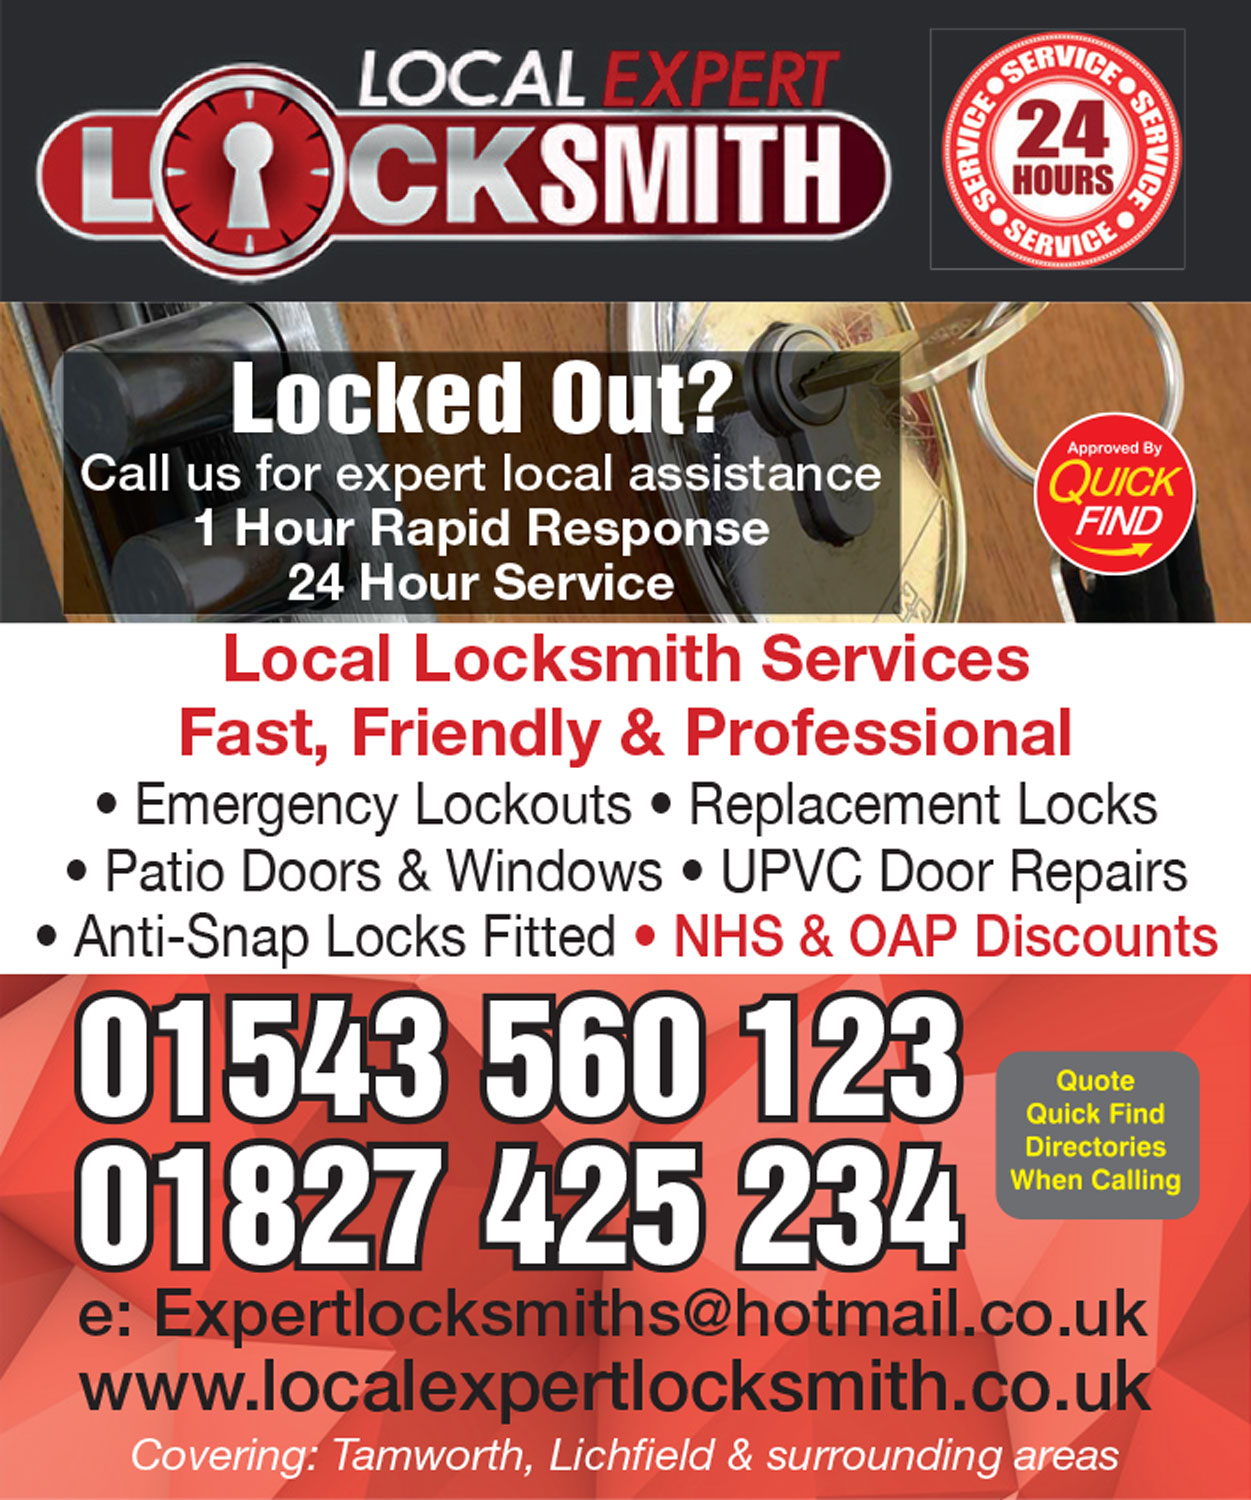 Local Expert Locksmith - Tamworth